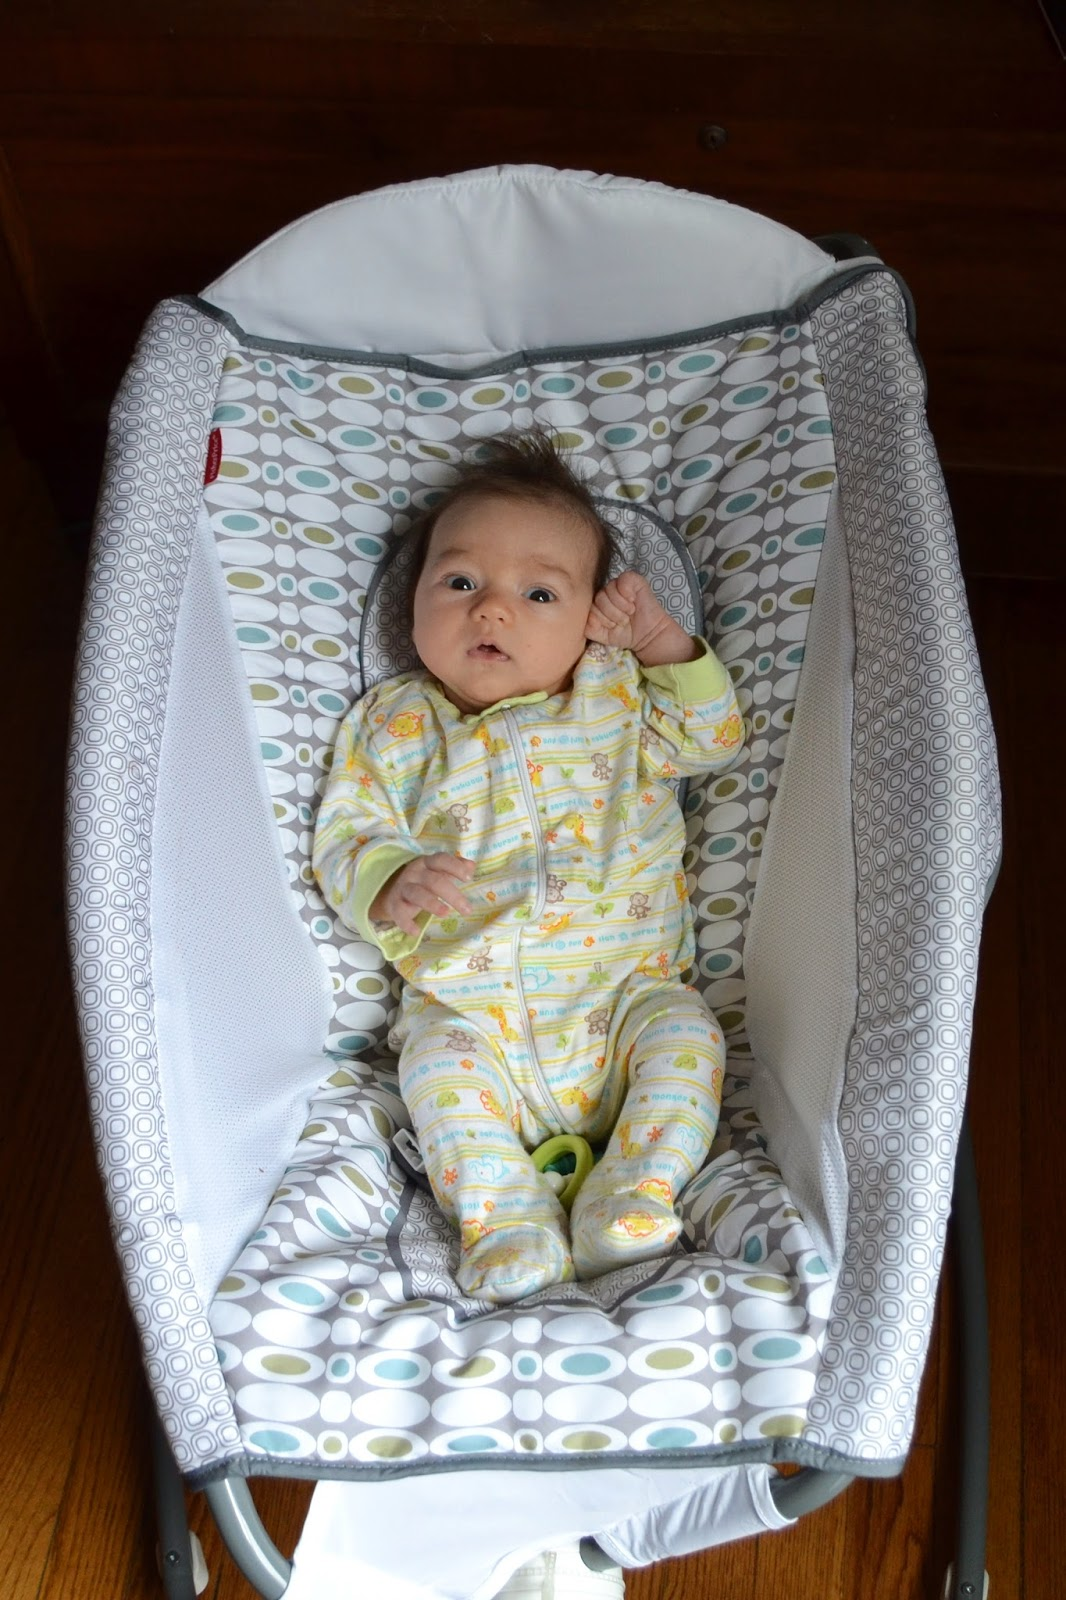 price safety review n newborn accessory sleeper play guide fisher rock and our sleep